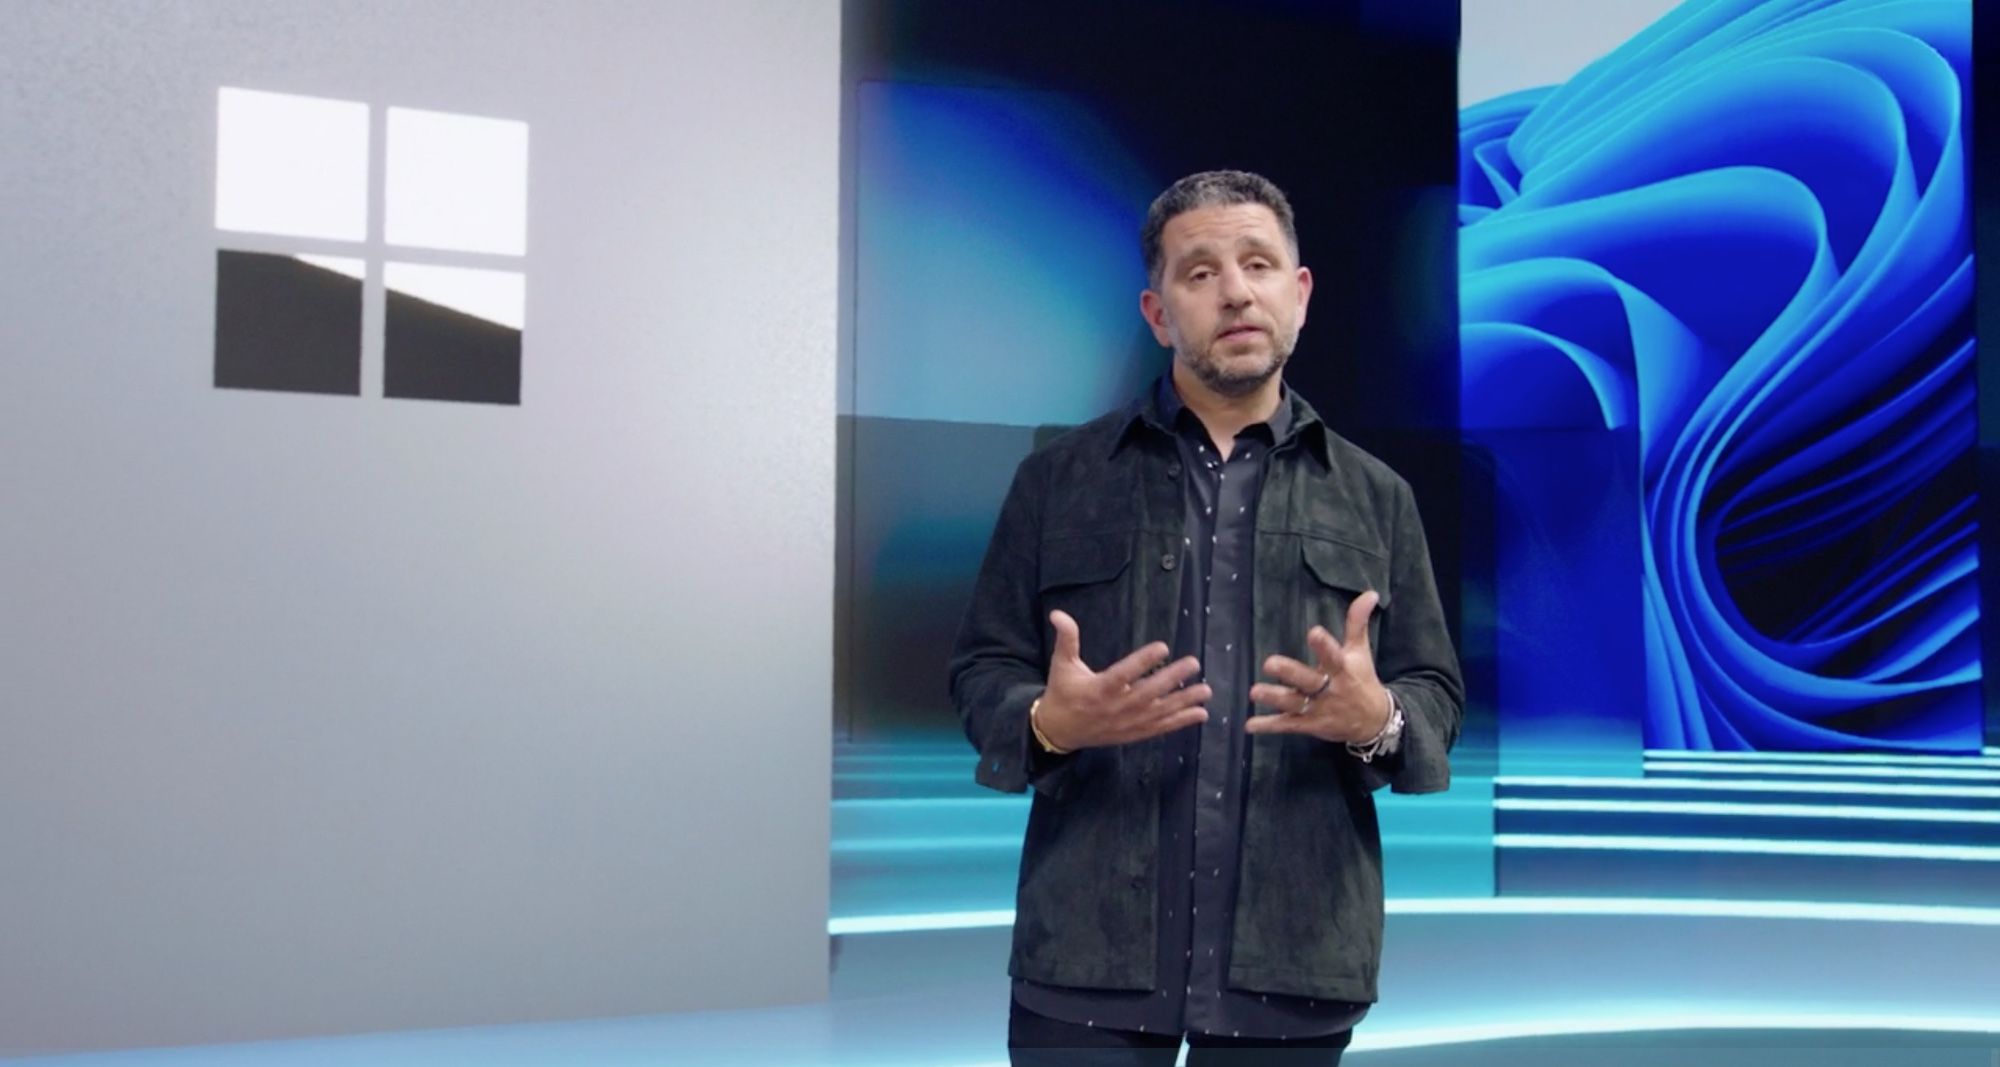 Panos Panay at Surface Event